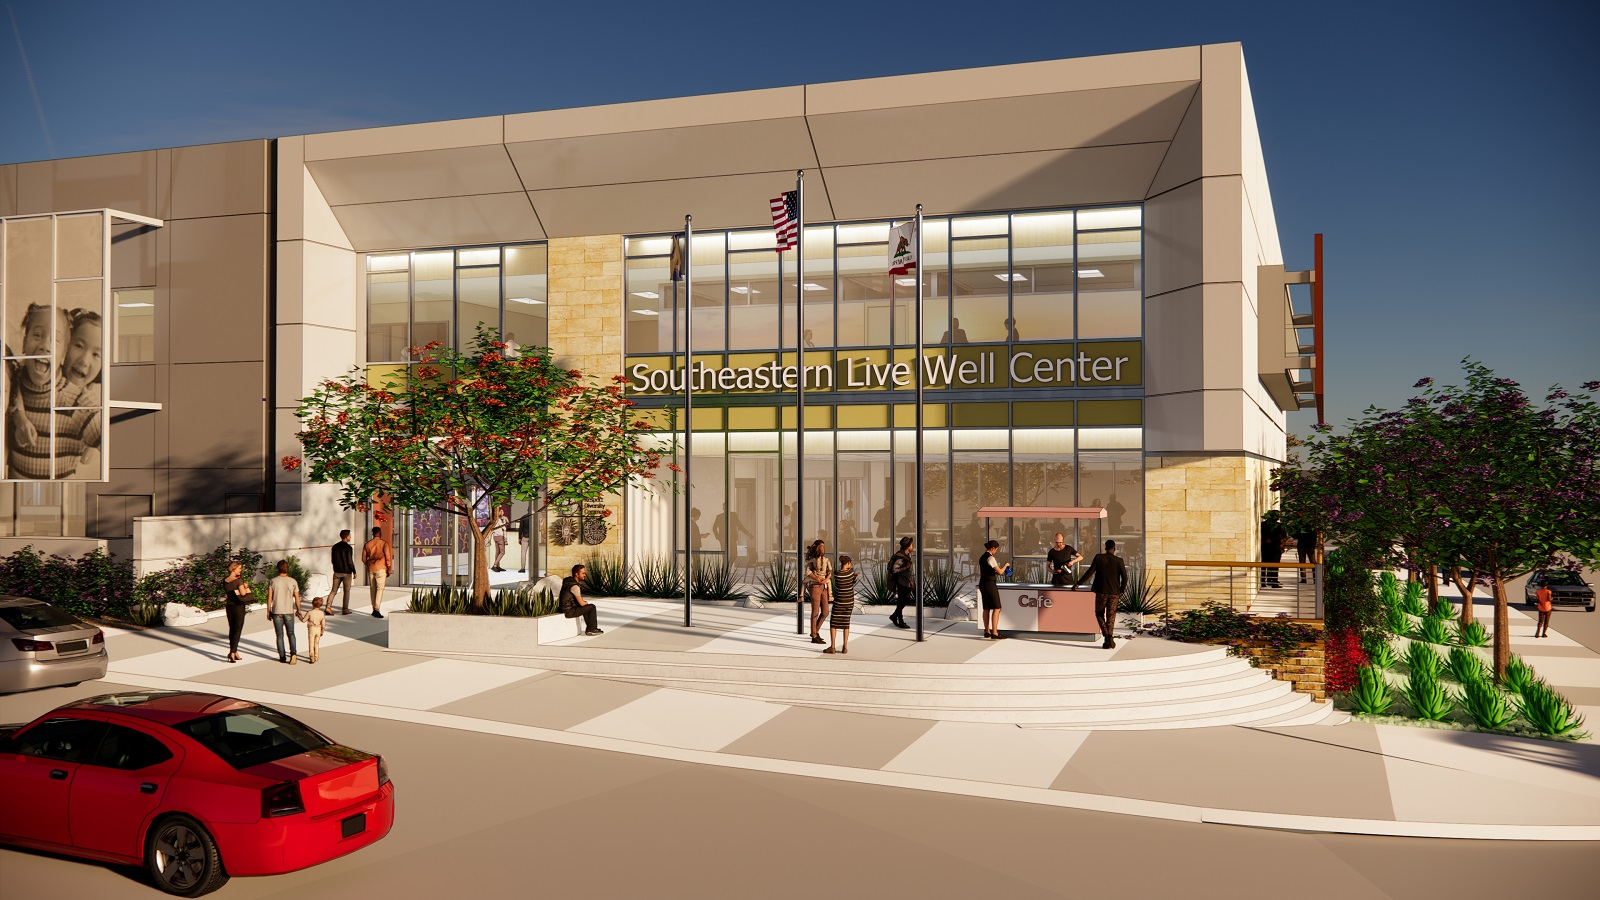 Southeastern Live Well Center rendering